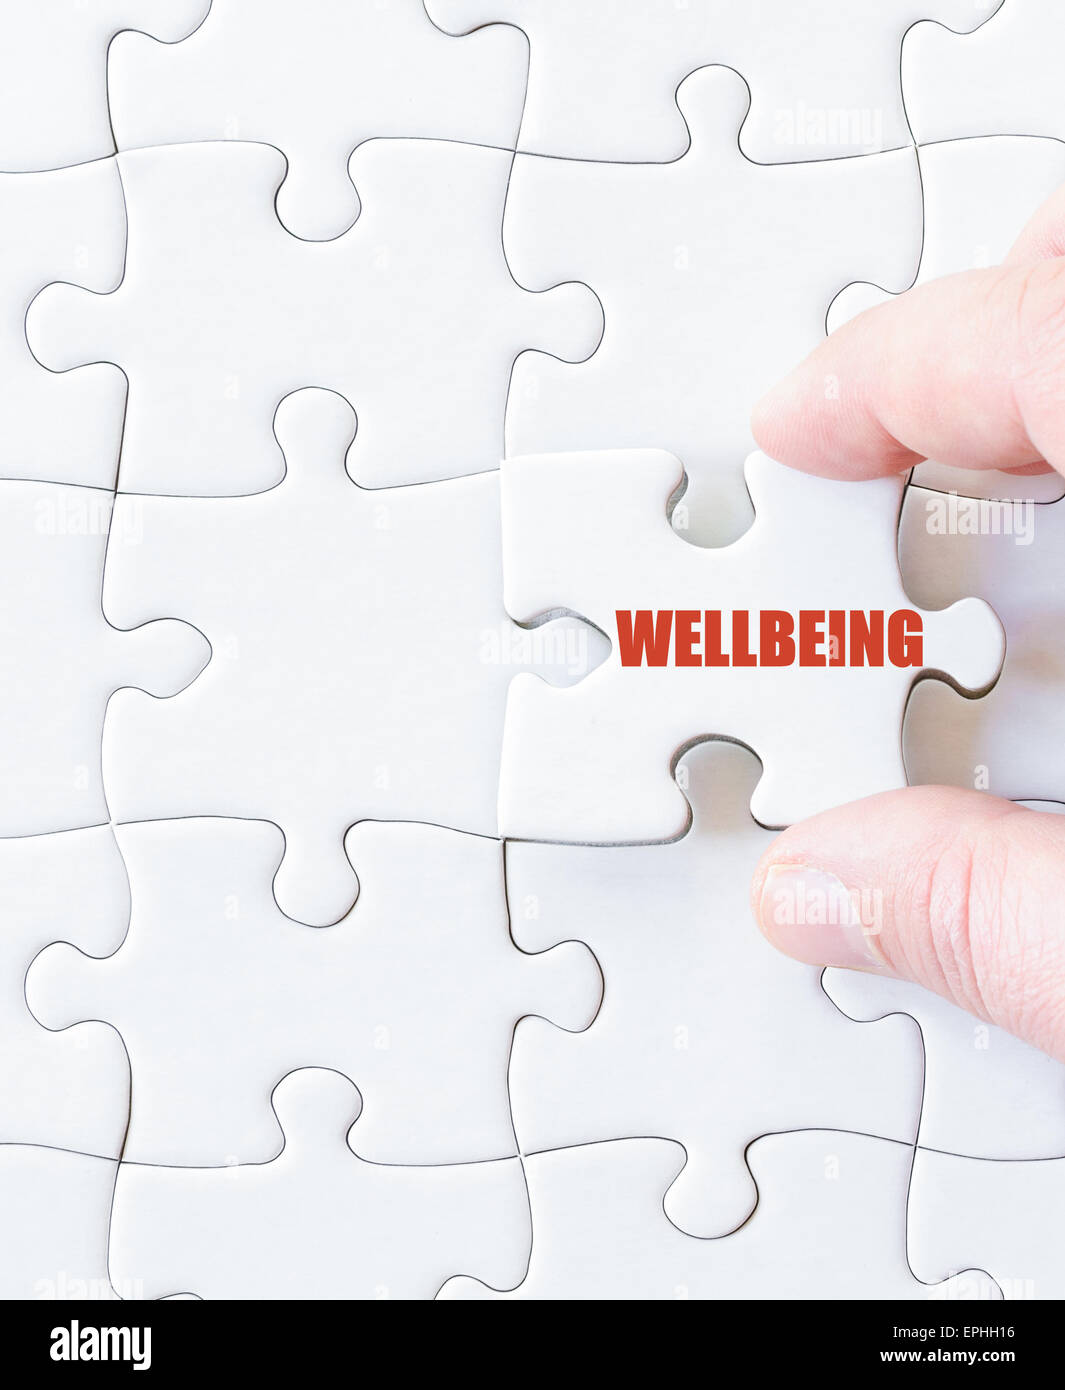 Missing jigsaw puzzle piece with word  WELLBEING. Concept image for completing the puzzle. - Stock Image